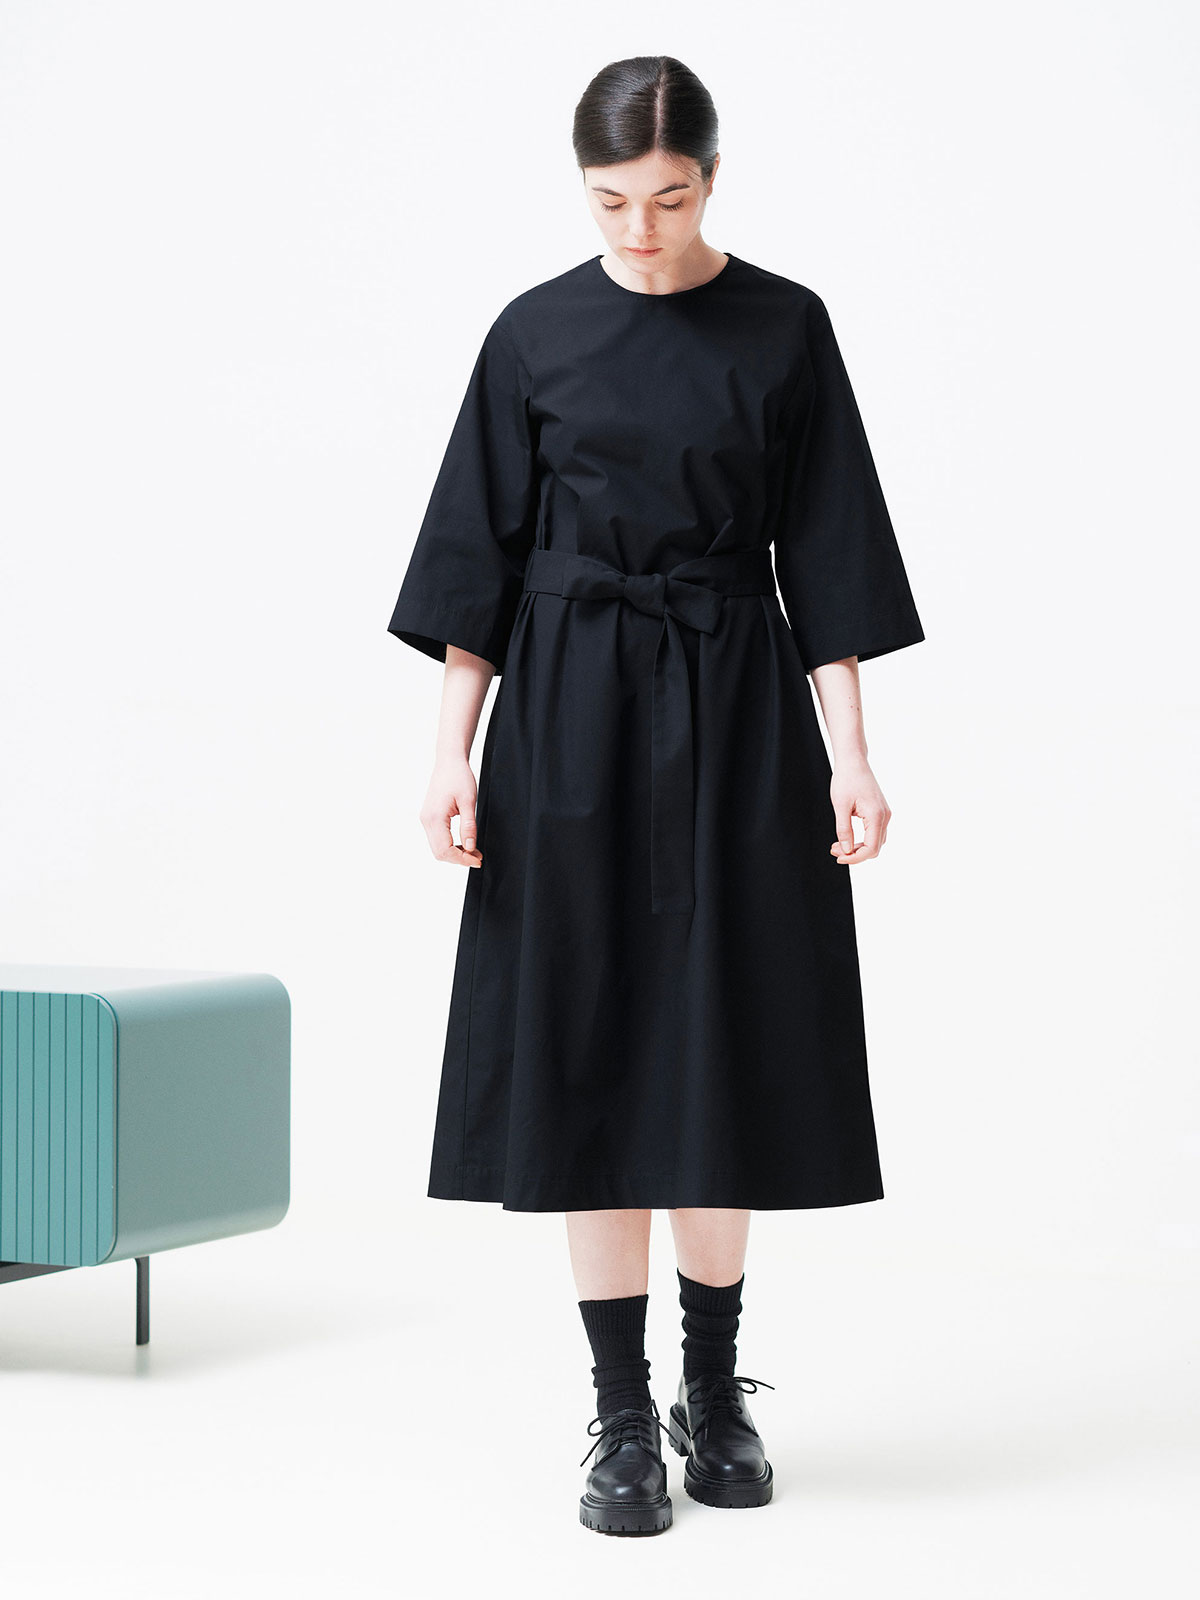 ELISAVETA DRESS mid-length belted dress made from high-quality cotton poplin